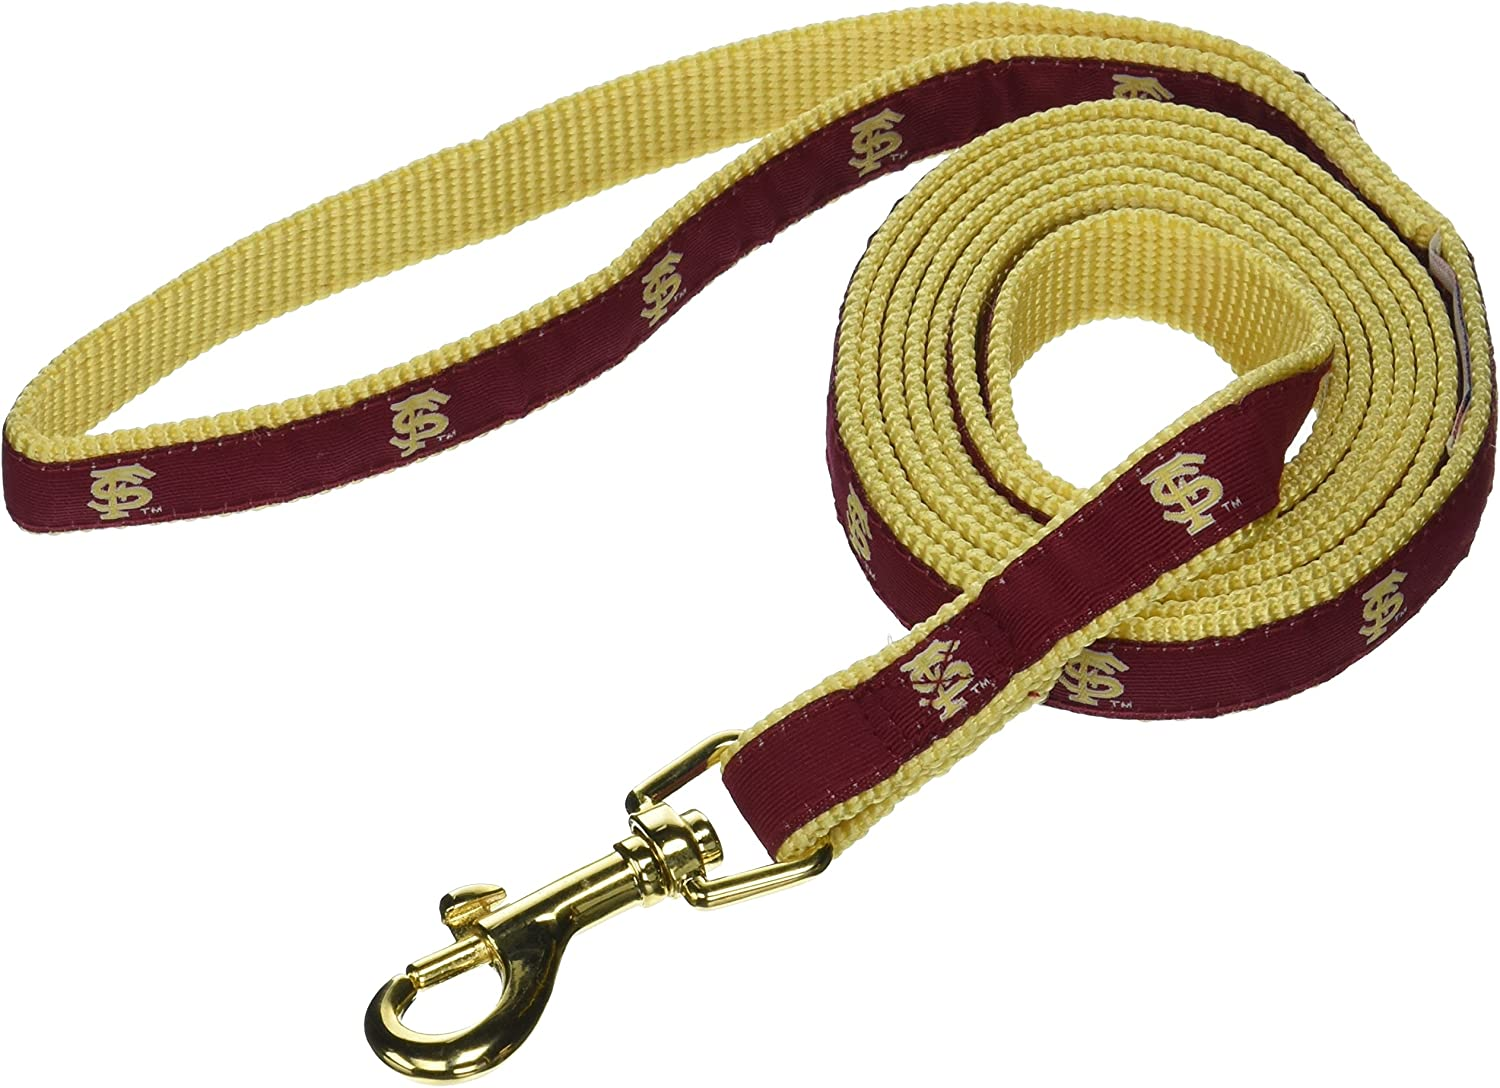 Football//Basketball leashes for DOGS /& CATS COLLEGE PET LEASH NCAA DOG LEASH - Durable SPORTS PET LEASH COLLEGIATE DOG LEASH available in 24 SCHOOL TEAMS